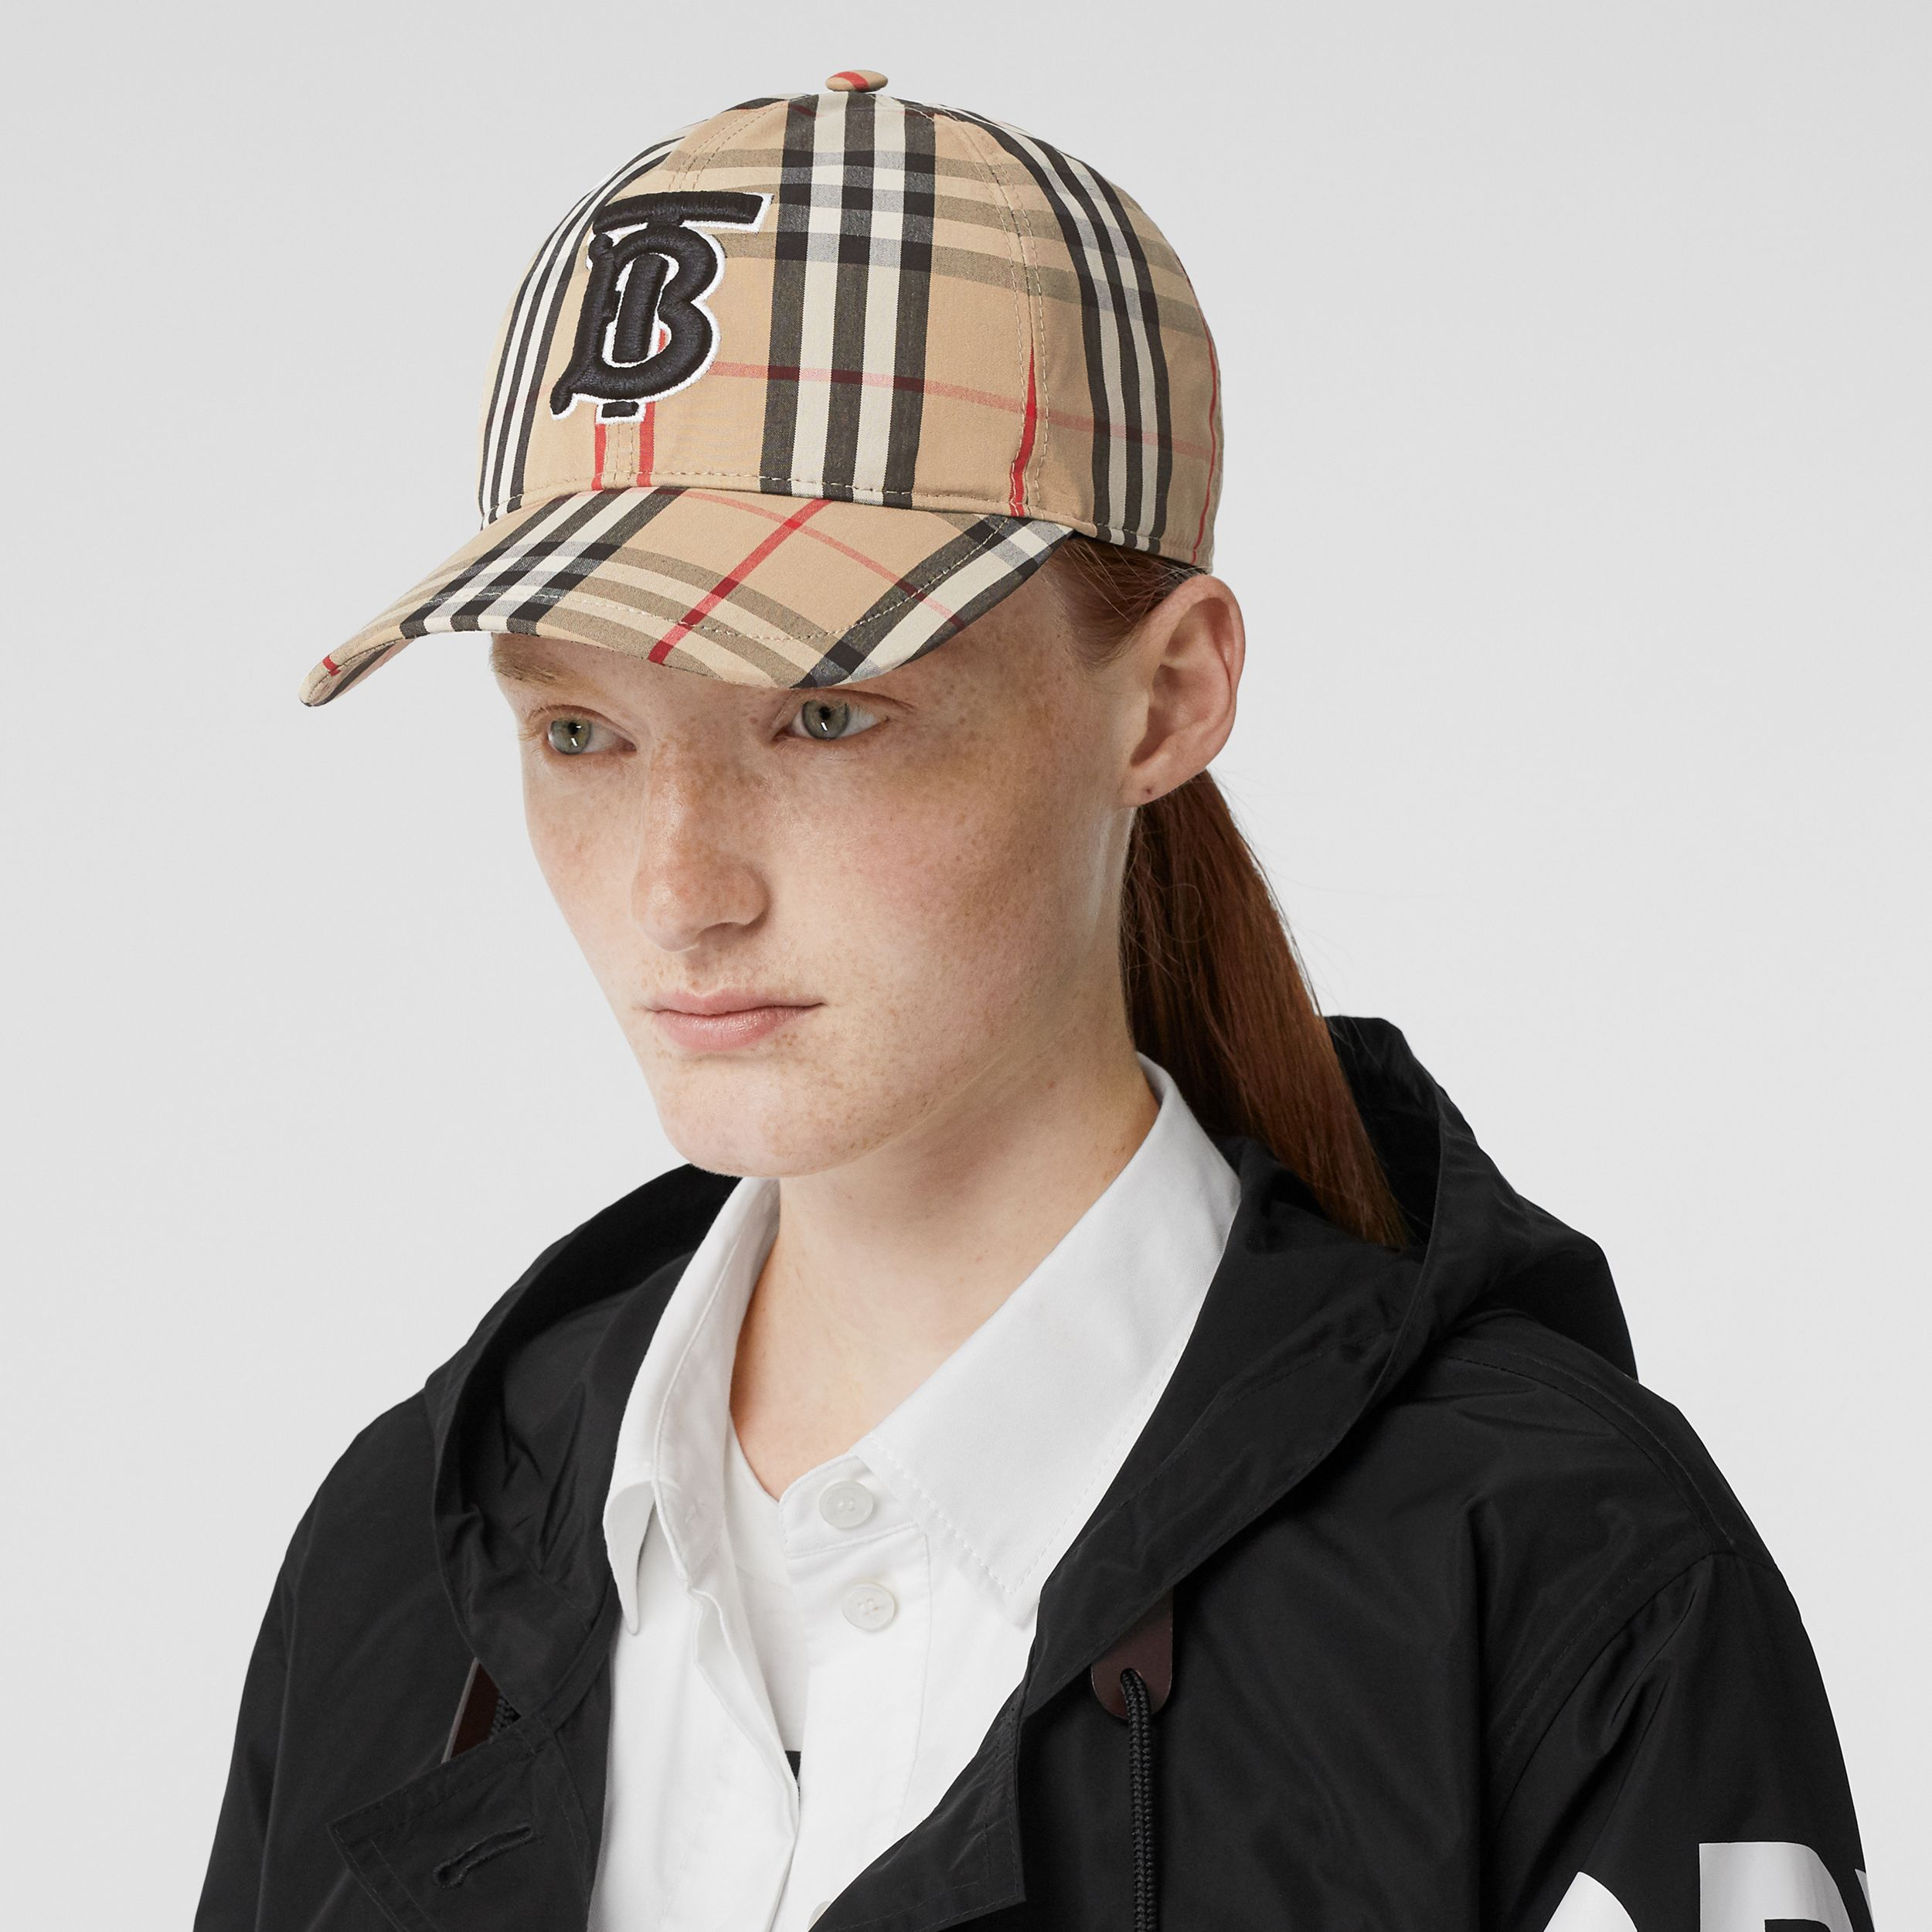 Monogram Motif Vintage Check Cotton Baseball Cap in Archive Beige | Burberry - 3